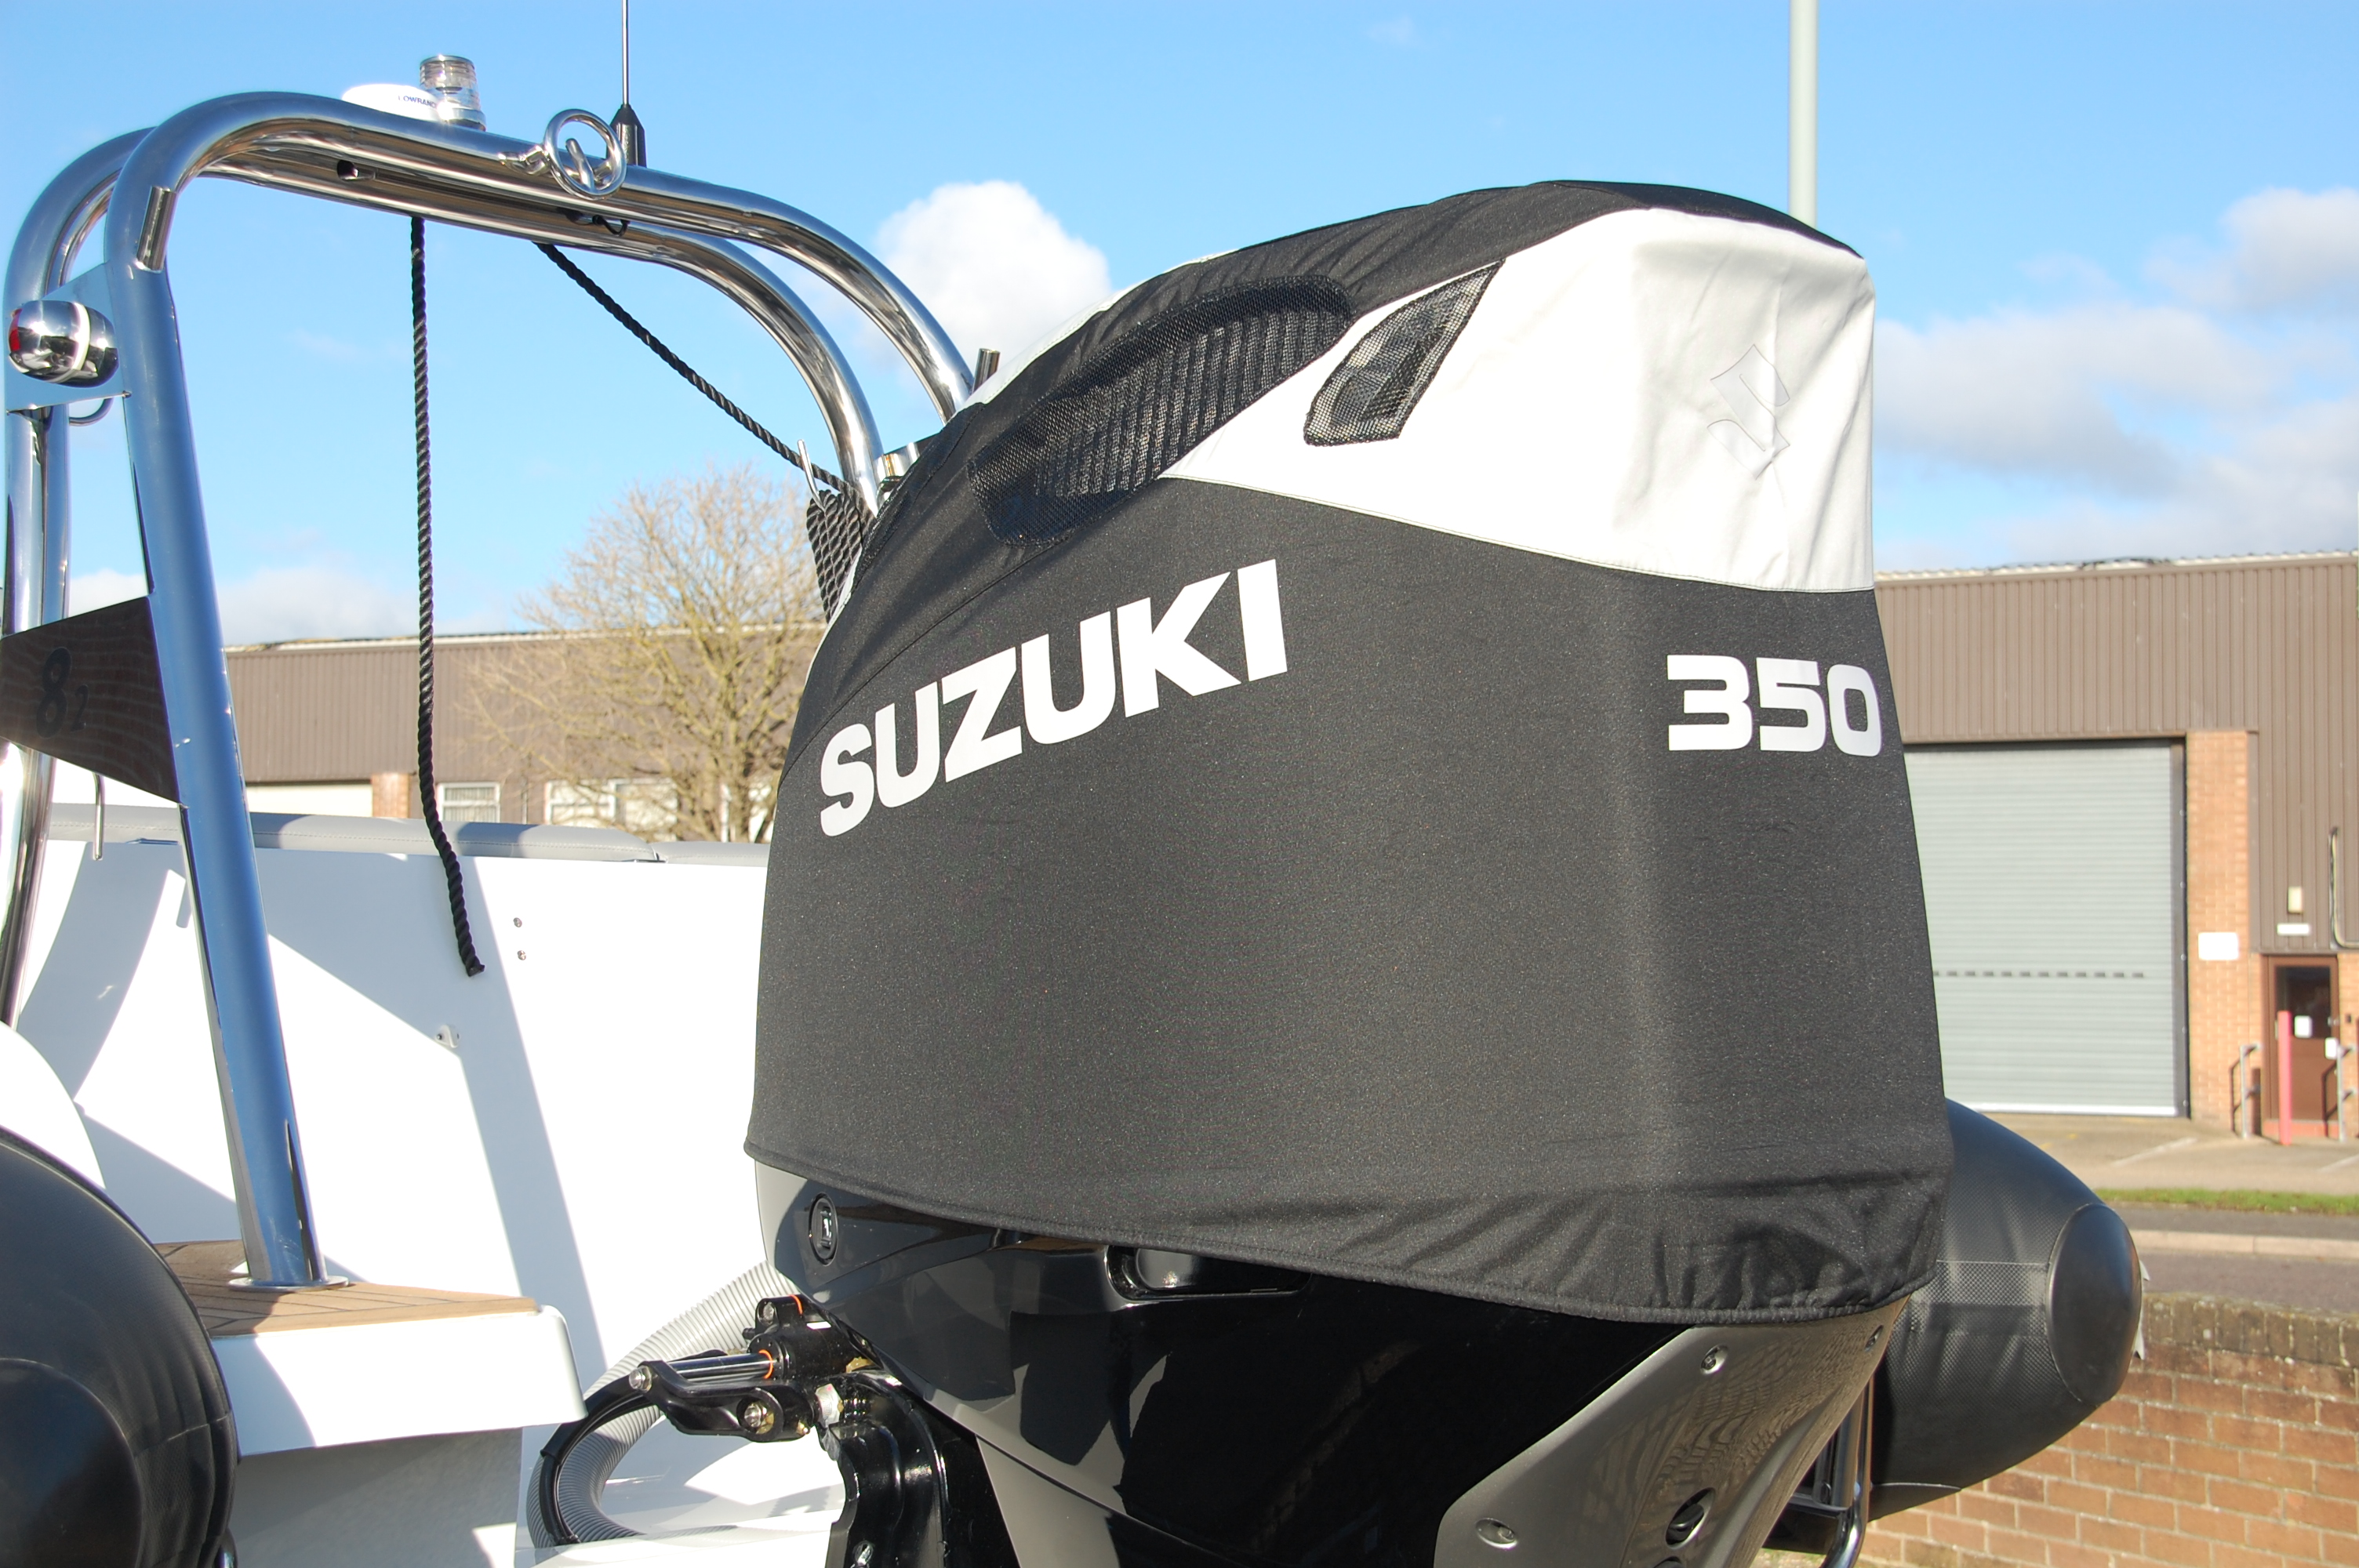 Outboard Covers & Accessories USA - The Manufacturers Choice